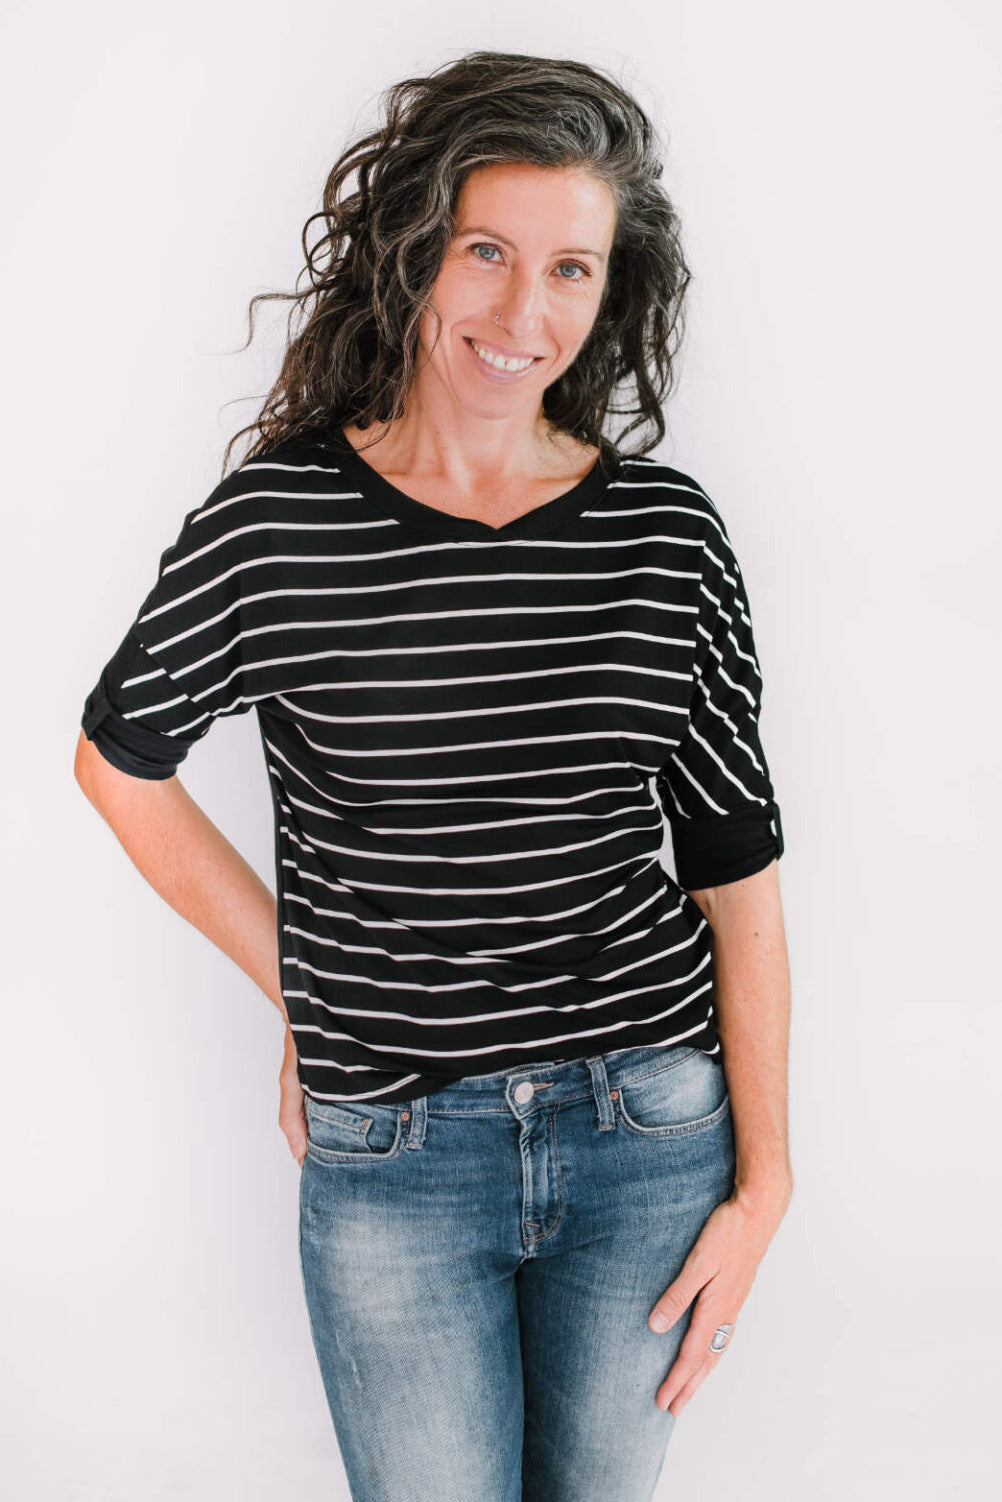 MARIE C Boreal Top in Black and White Stripes FW2020/2021 (front view)